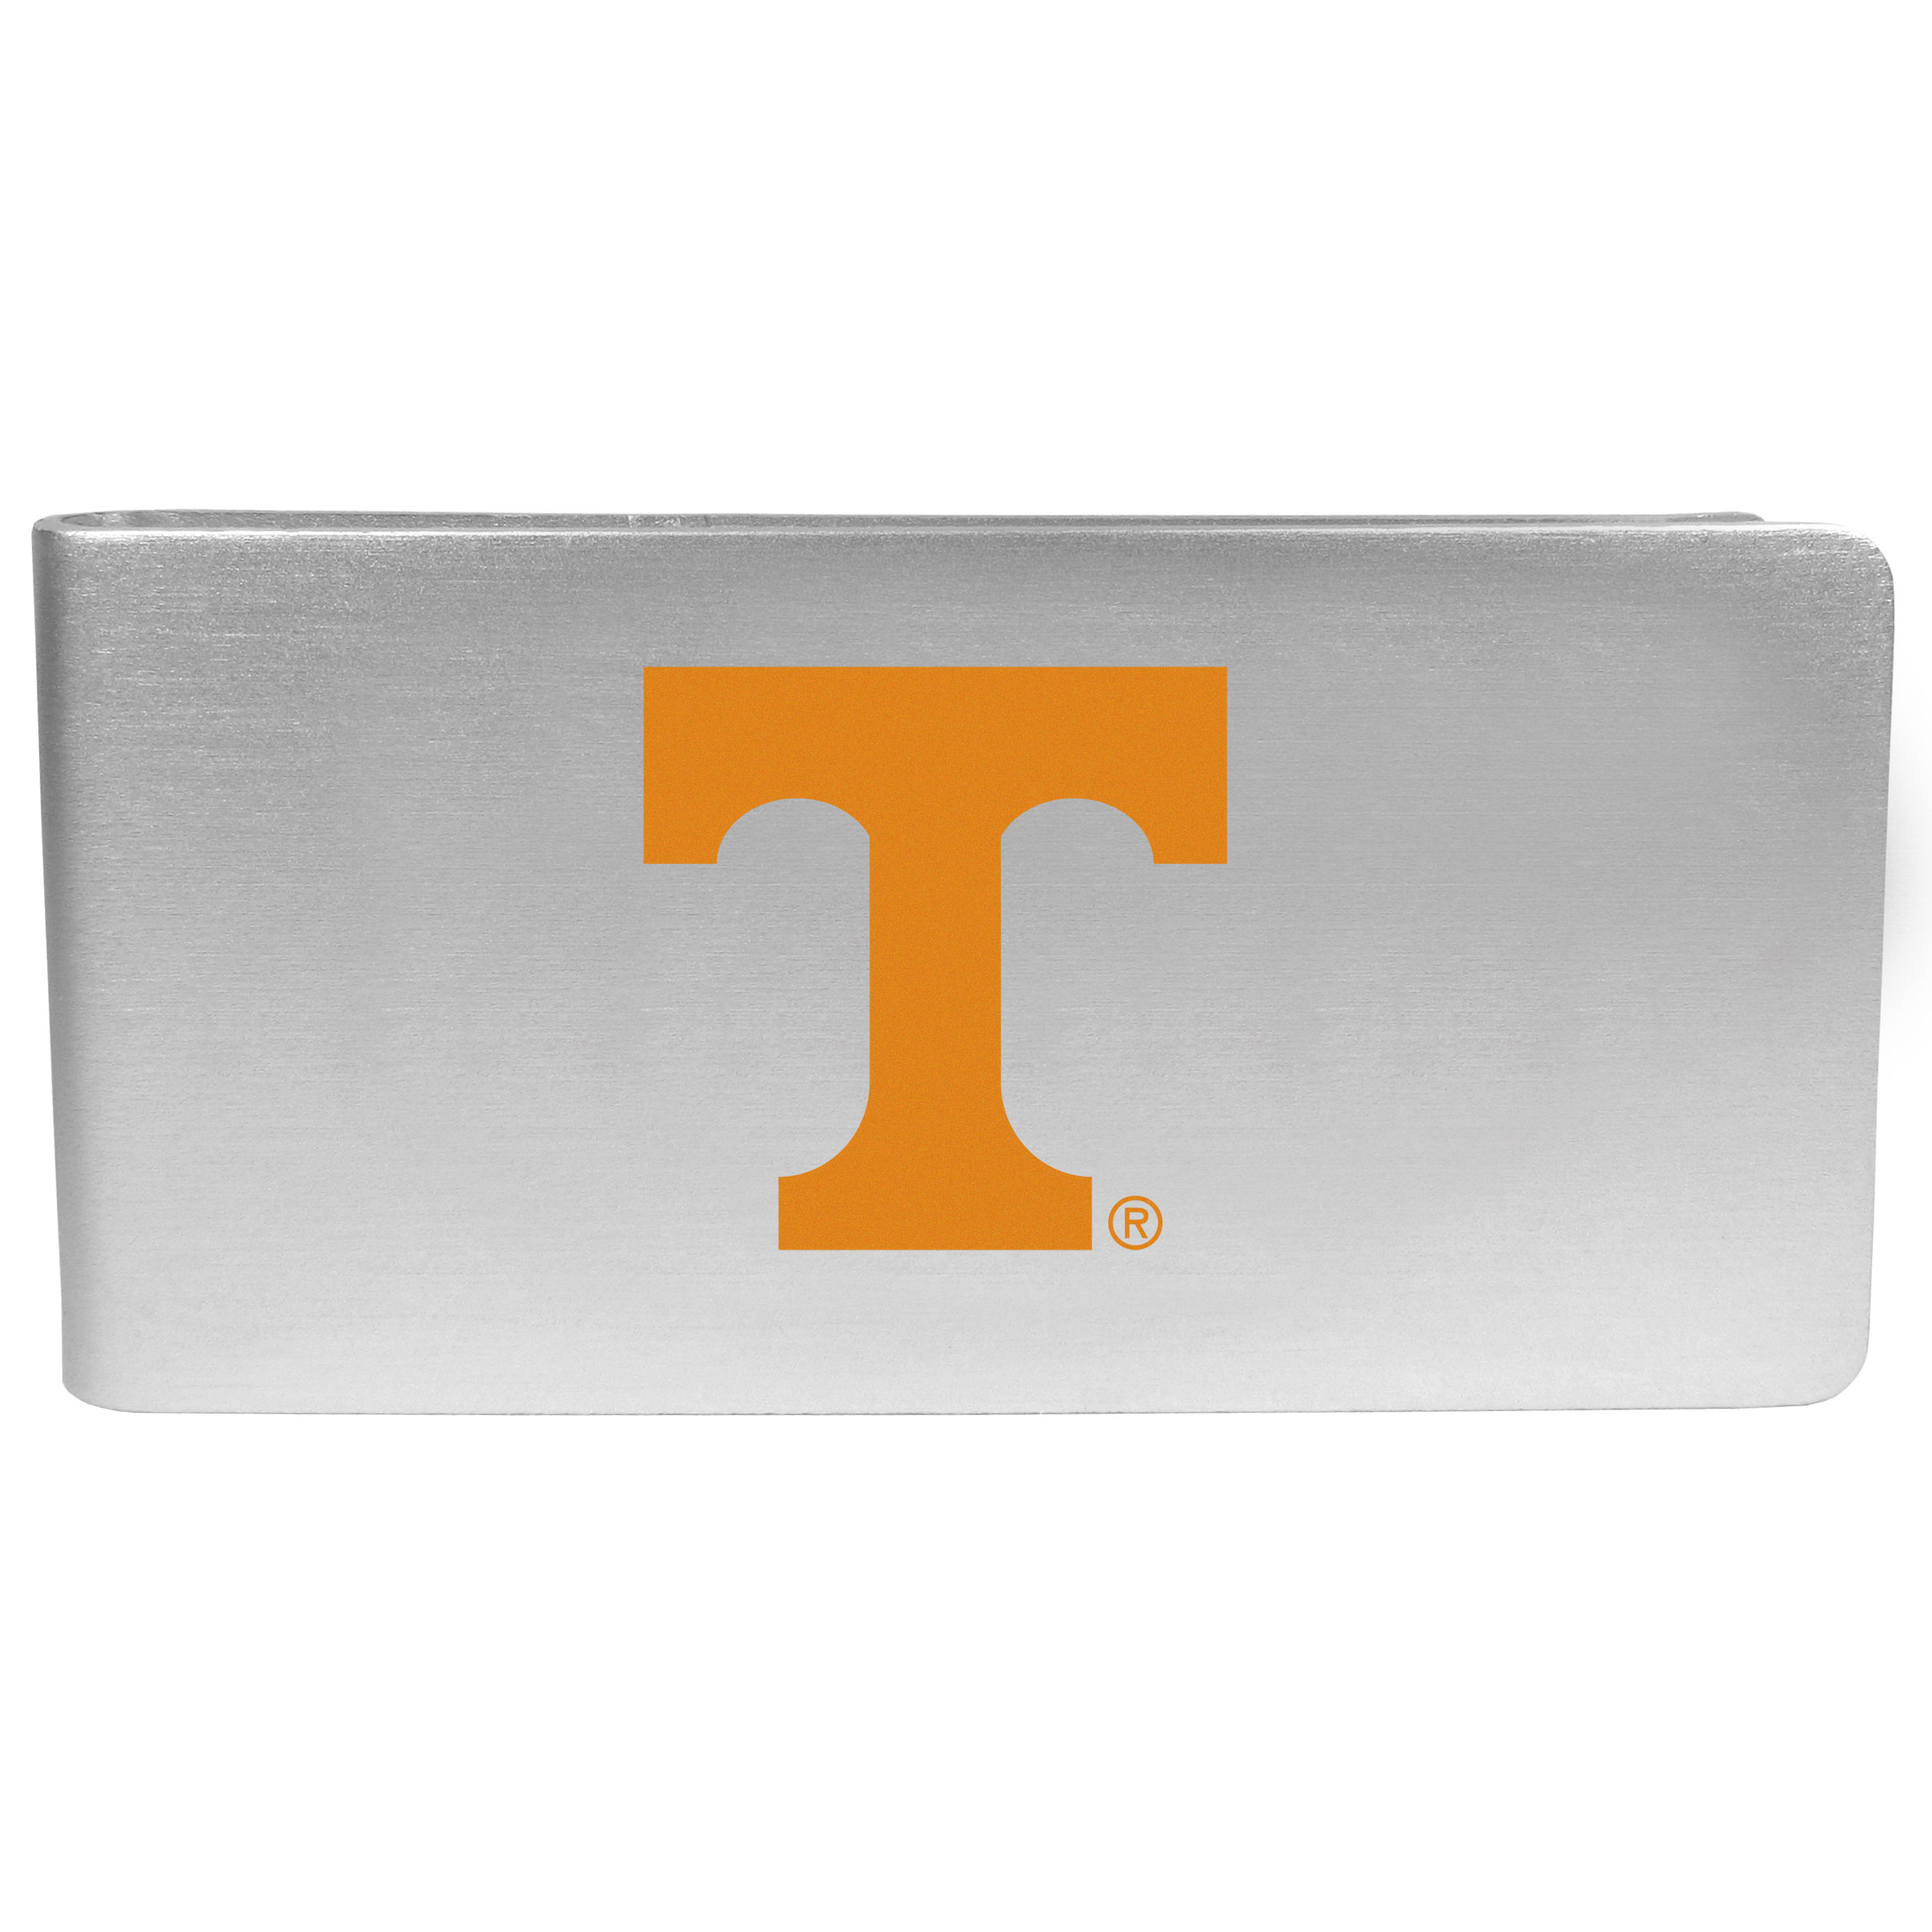 Tennessee Volunteers Logo Money Clip - Our brushed metal money clip has classic style and functionality. The attractive clip features the Tennessee Volunteers logo expertly printed on front.